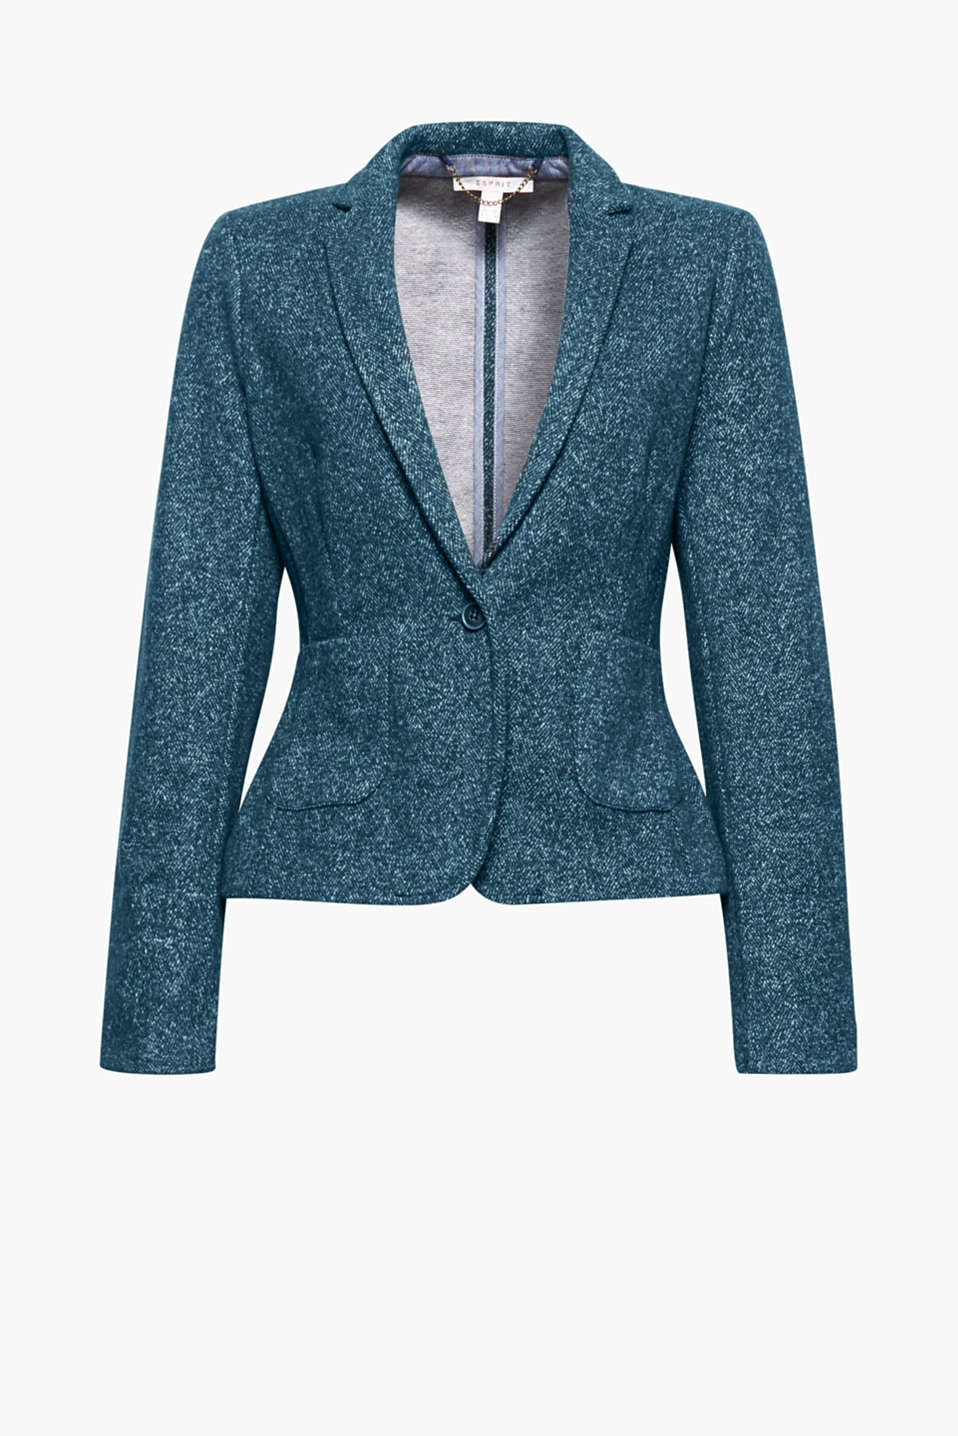 Work the smart casual approach: a fitted blazer design in a fine herringbone pattern will give you a stylish yet comfortable look!